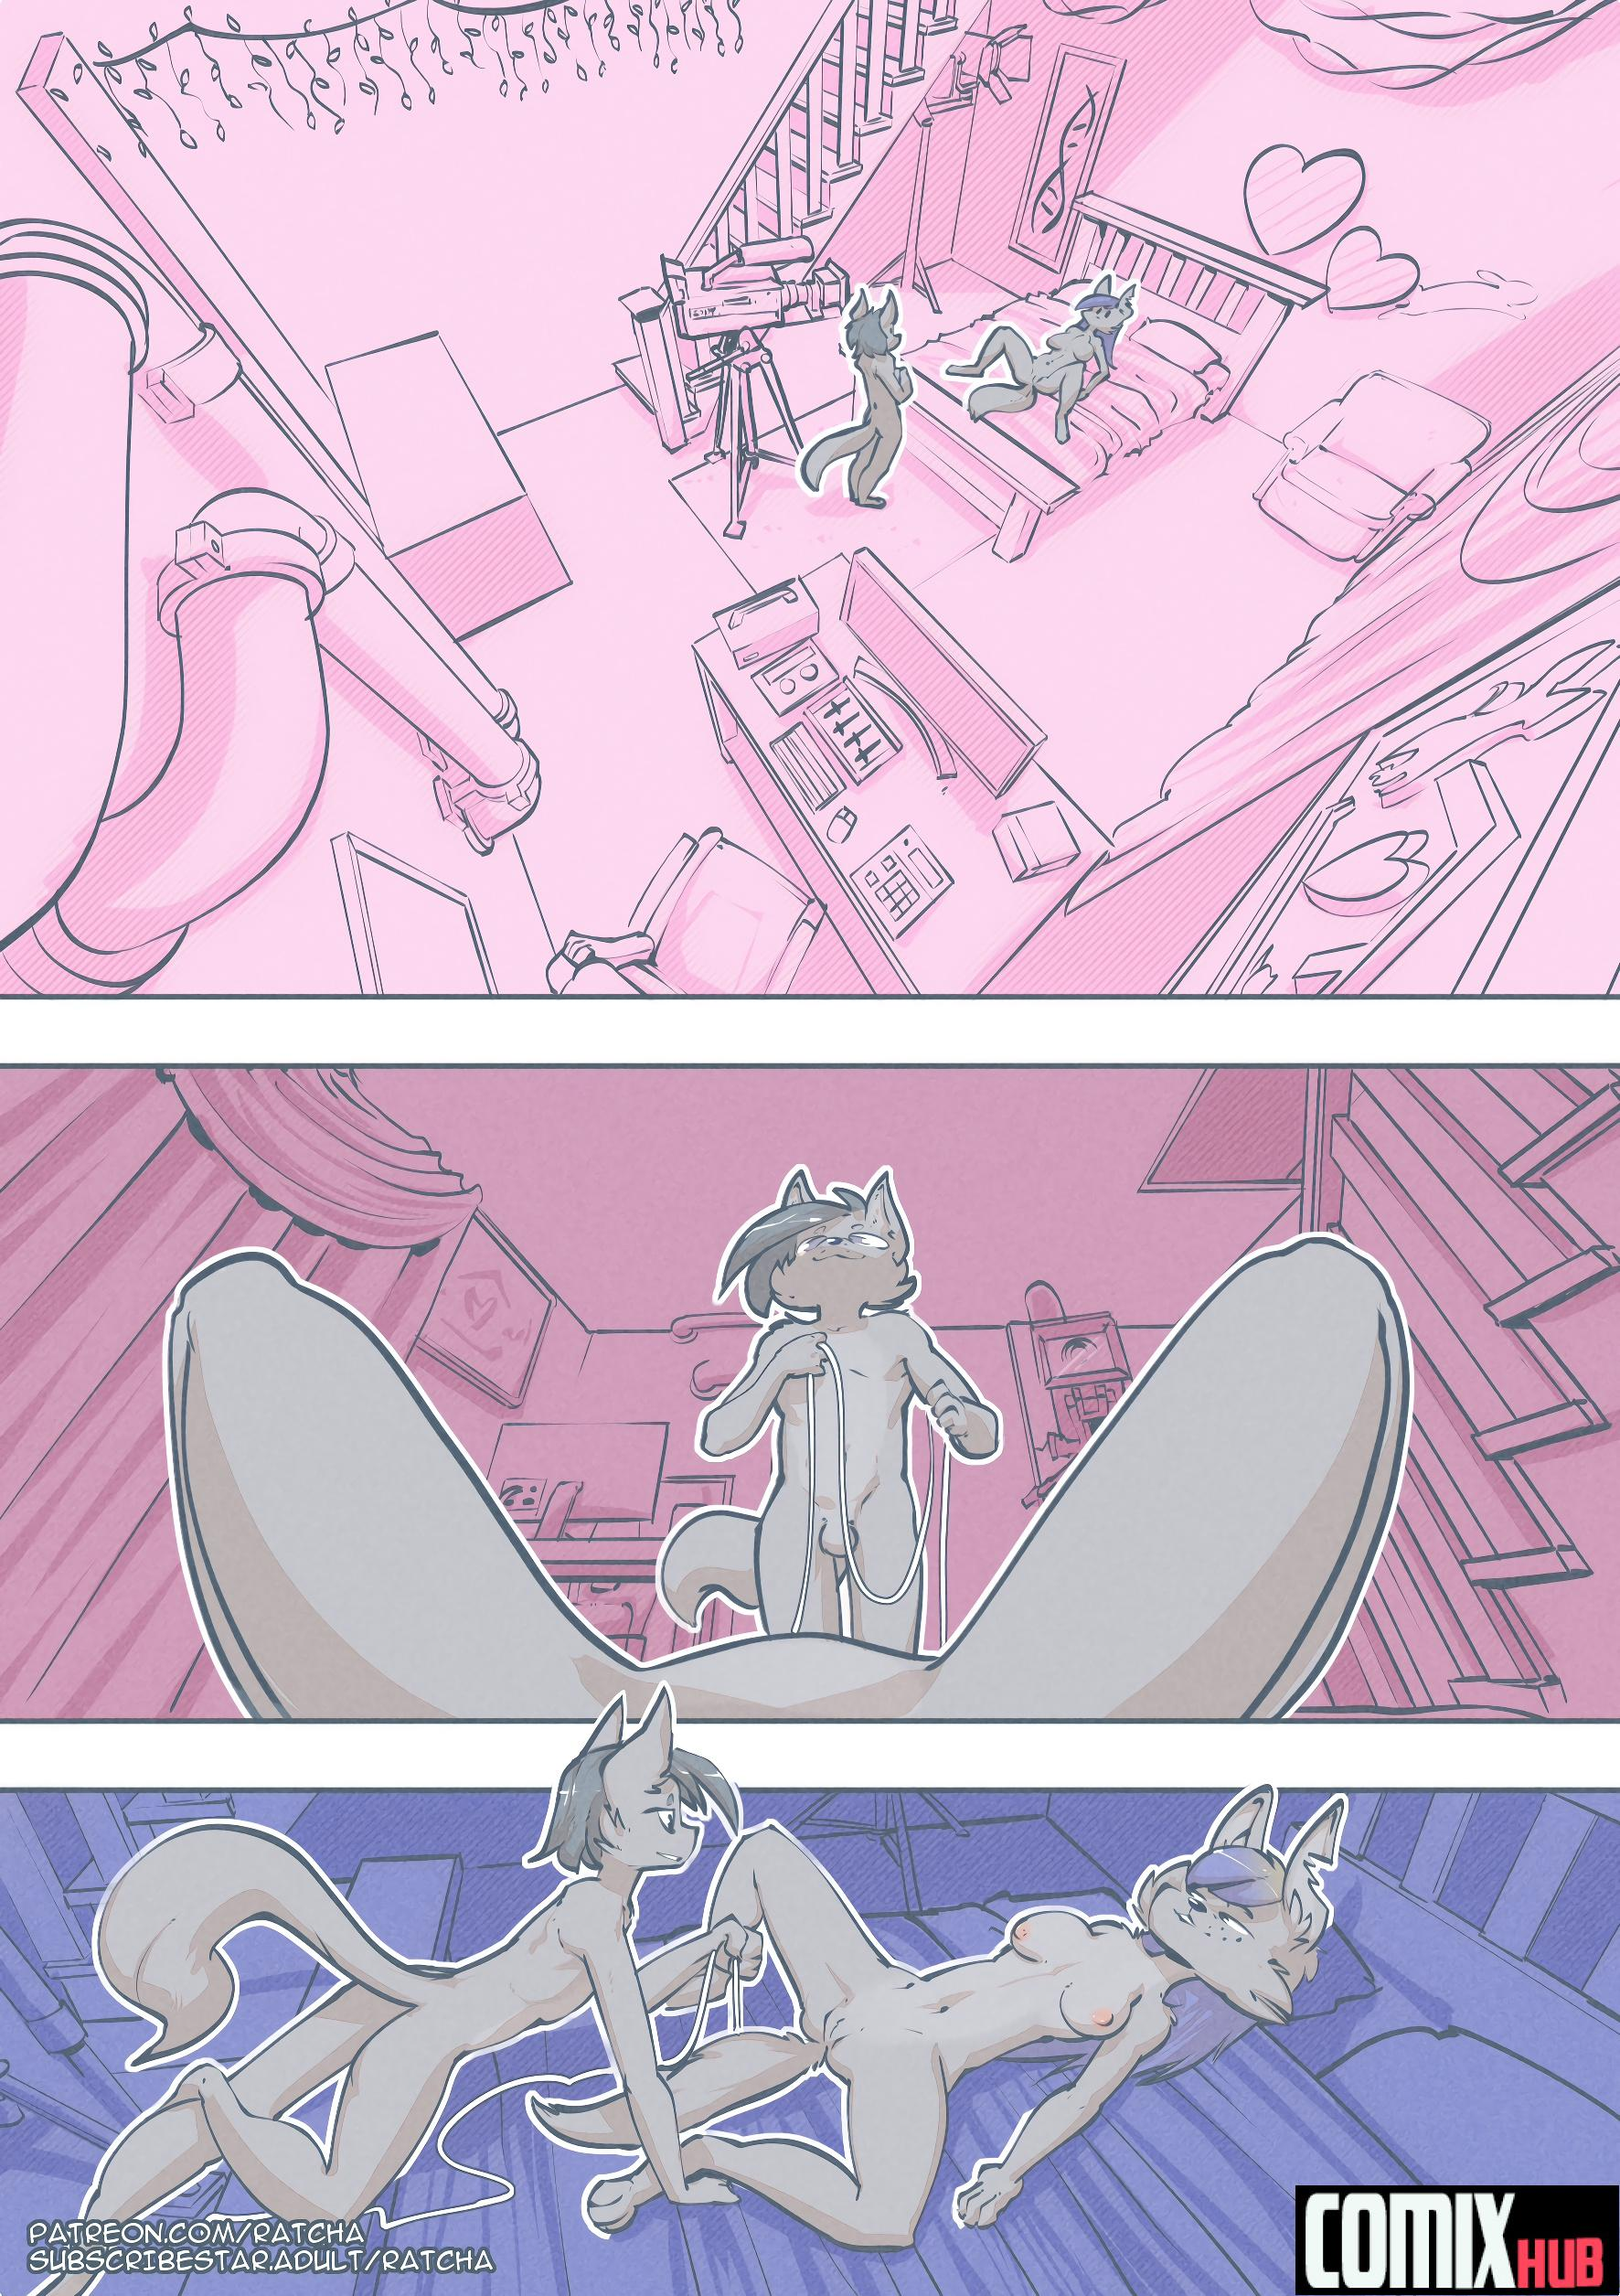 Porn comics, Chapter 8 - The Dungeon BDSM, Bondage, Furry, Very Close Relatives